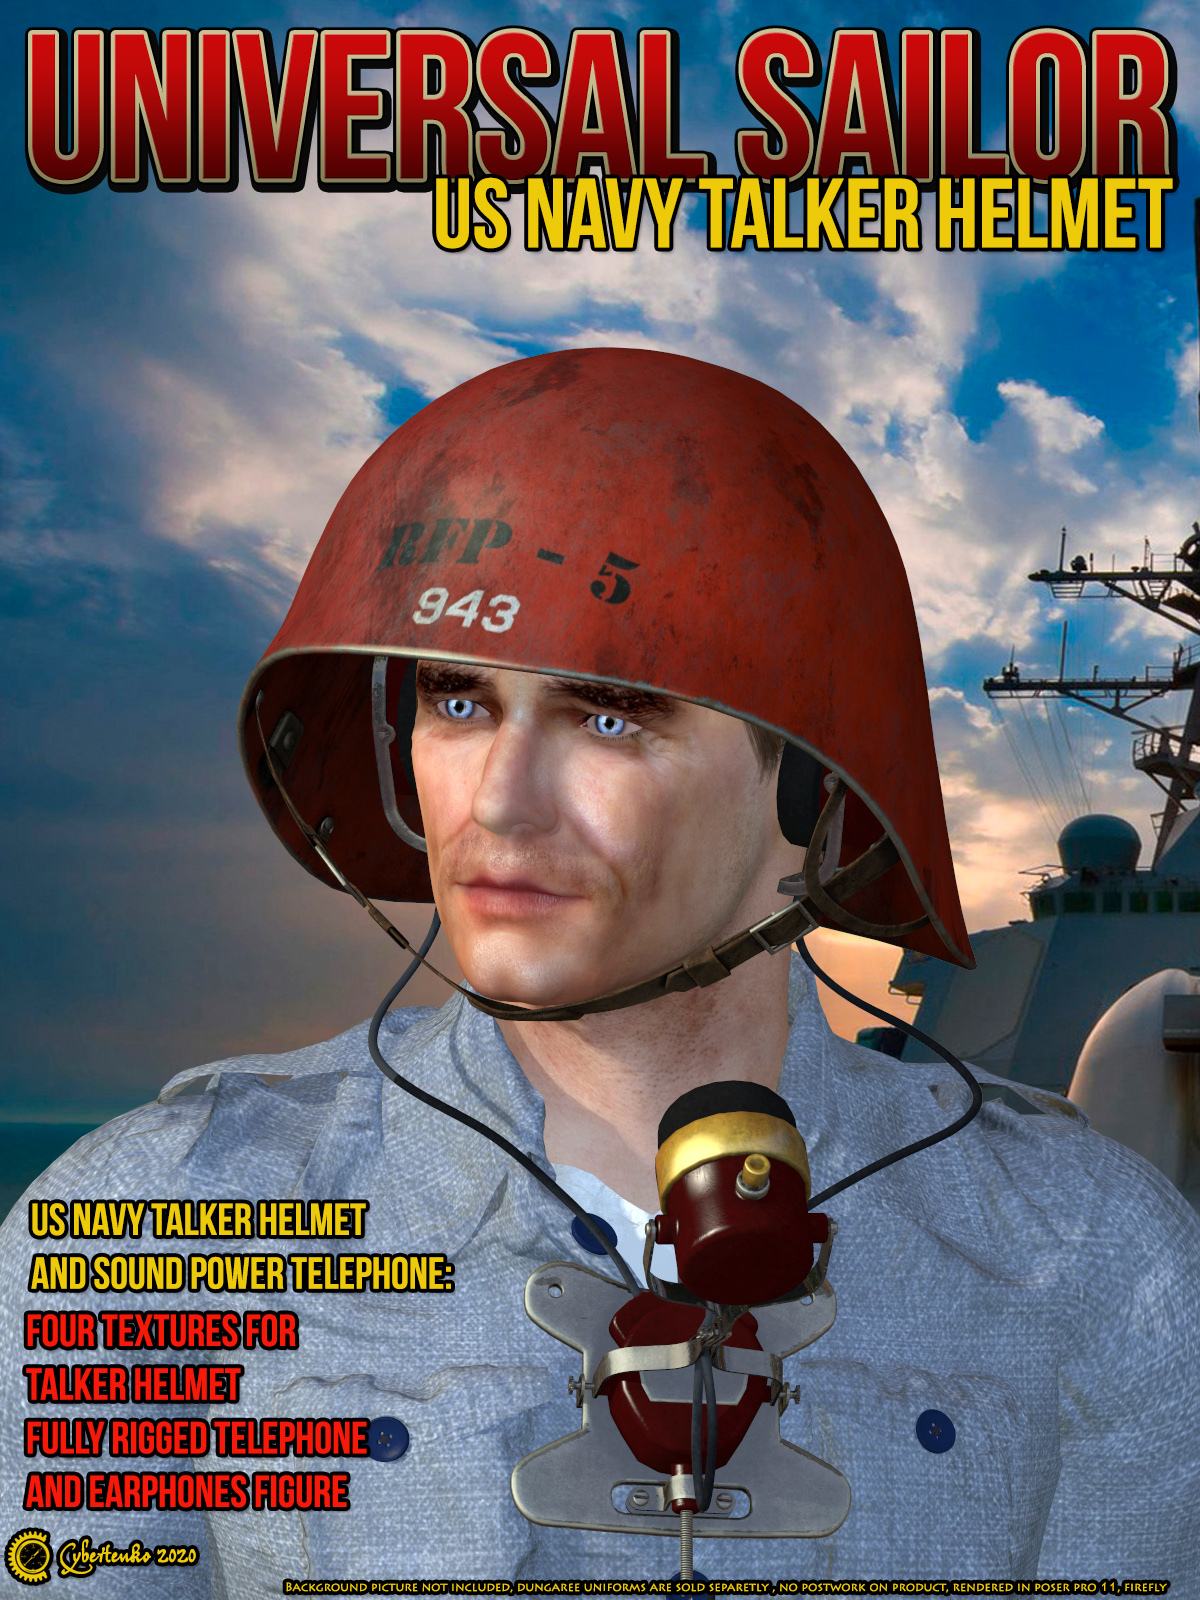 Universal Sailor - US Navy Talker Helmet by Cybertenko